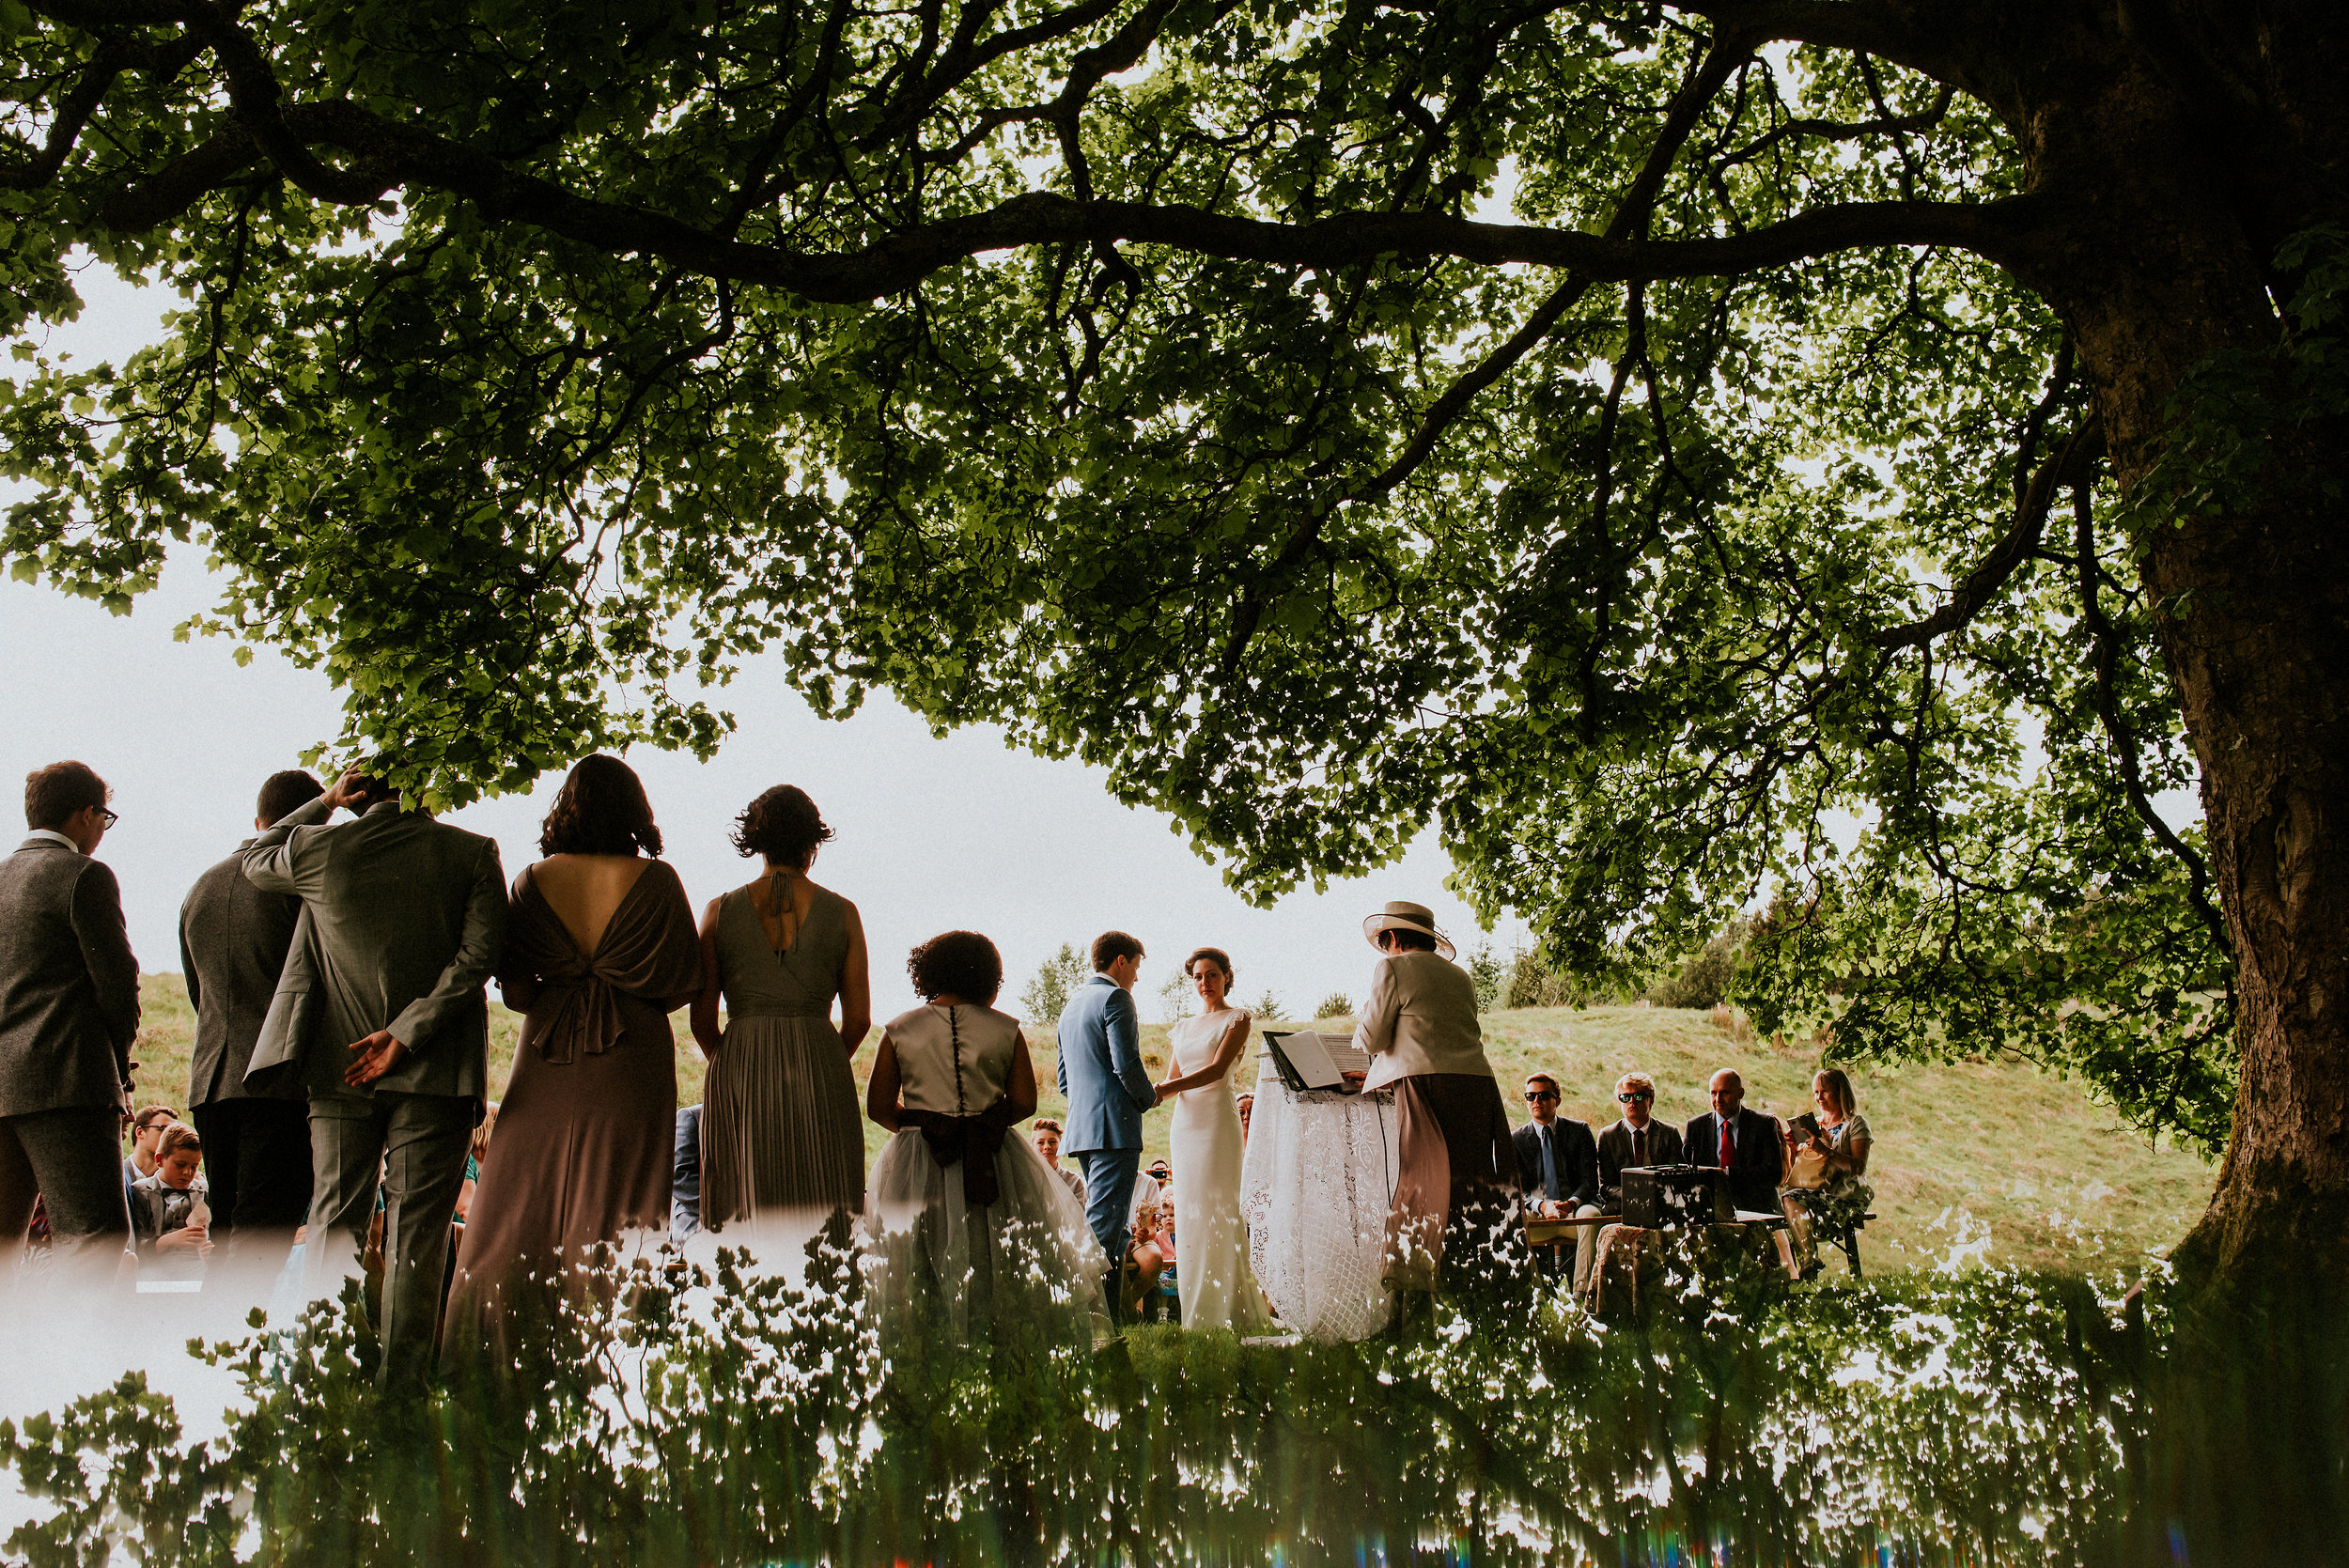 Epic Yorkshire Dales vistas, Wild Woodlands, Hand made details & an outdoor alternative wedding ceremony underneath a tree. Get ready to be truly mesmerised by this magical  Cotterdale  wedding.